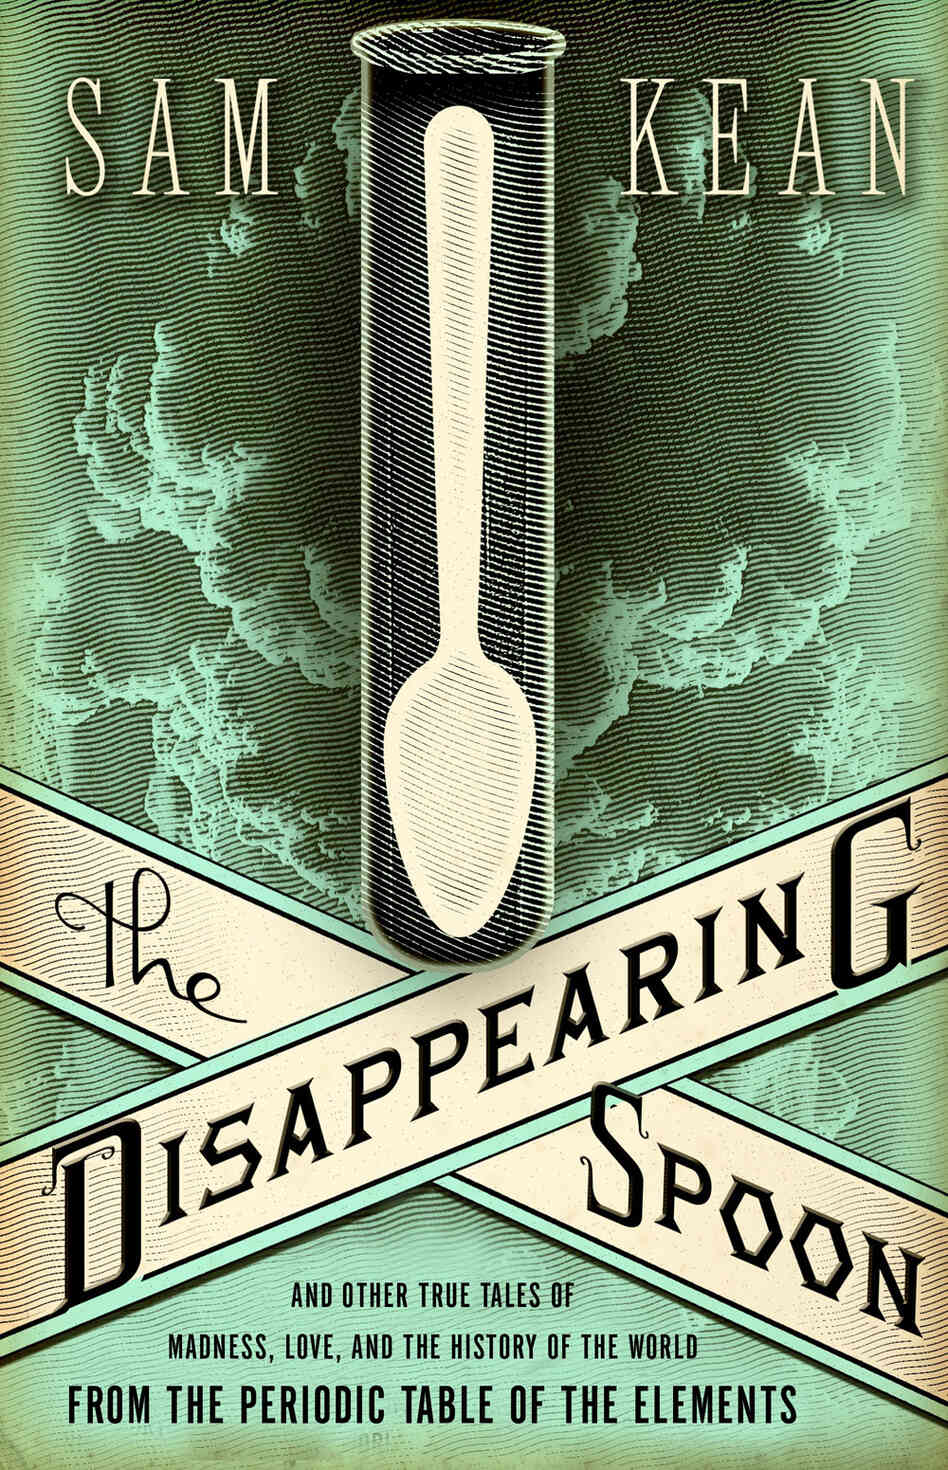 'The Disappearing Spoon' by Sam Kean.